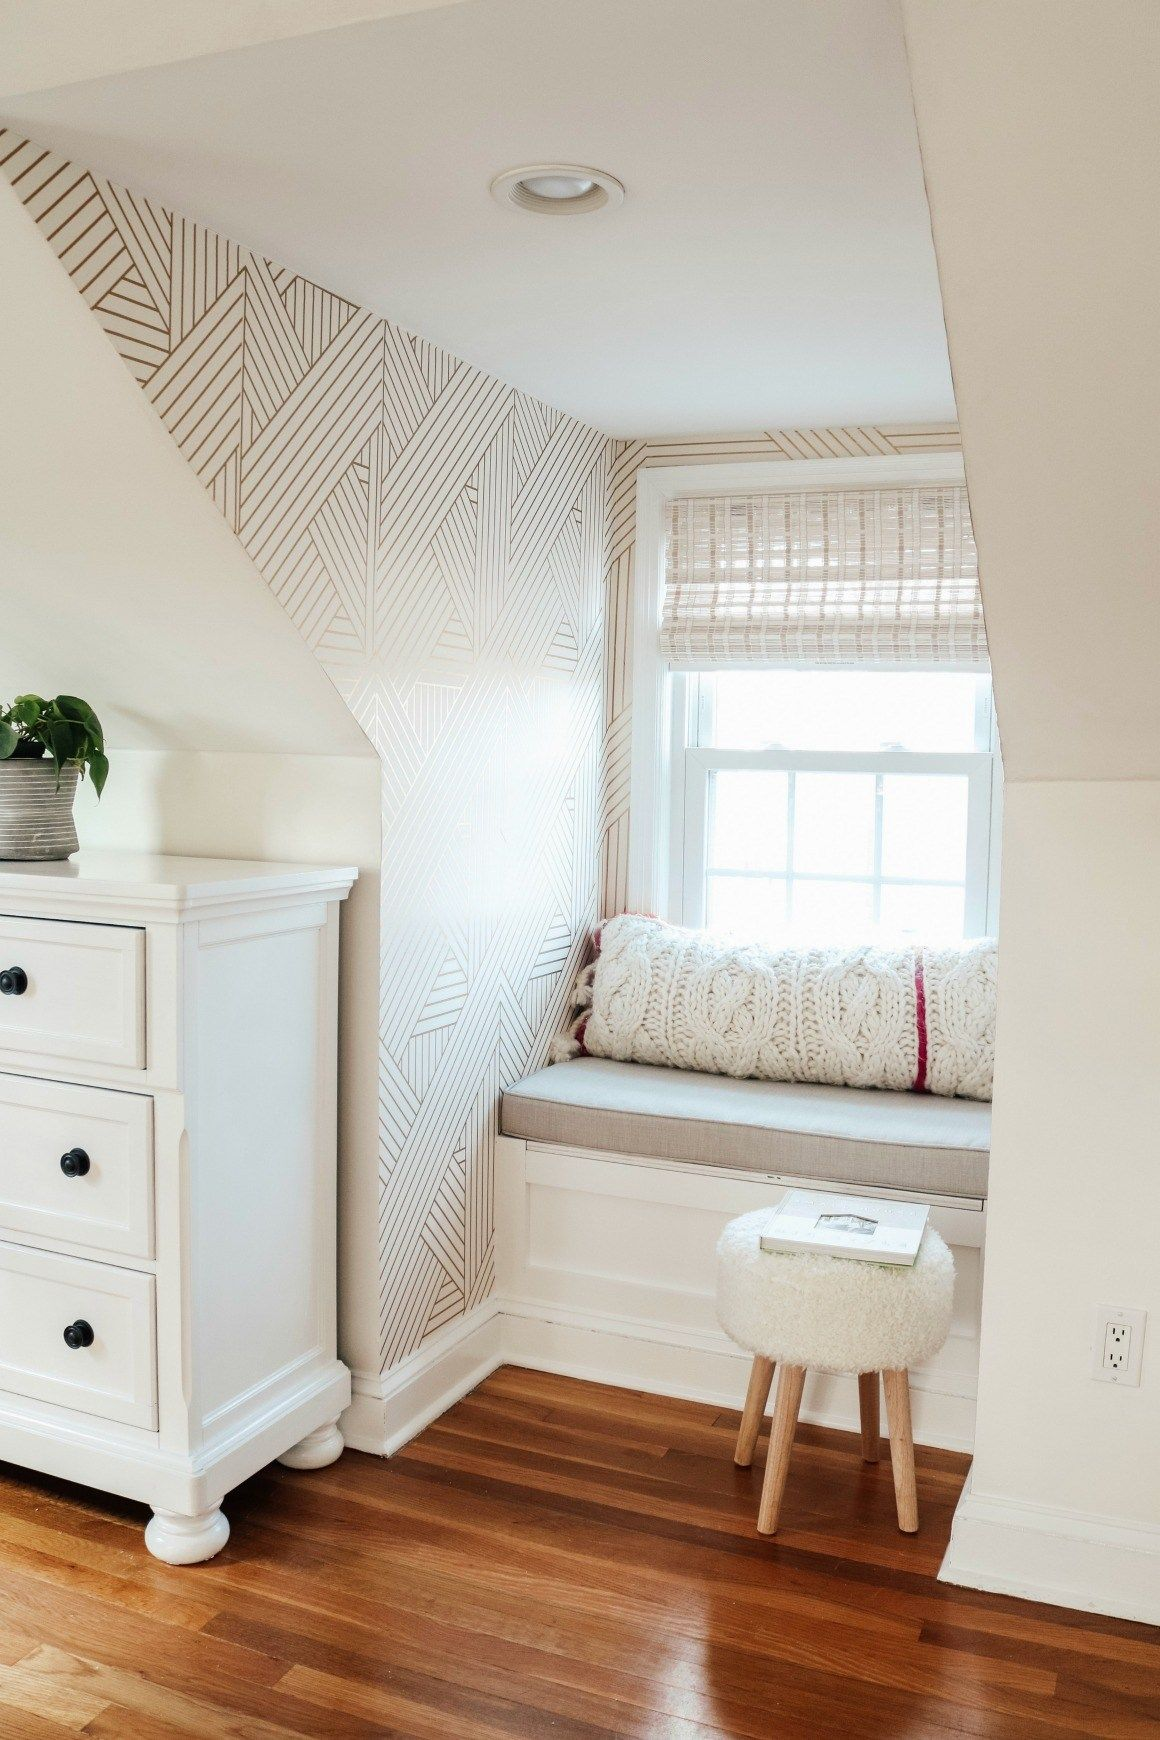 Best Bedroom Makeover Dark Furniture To Bright White With 640 x 480